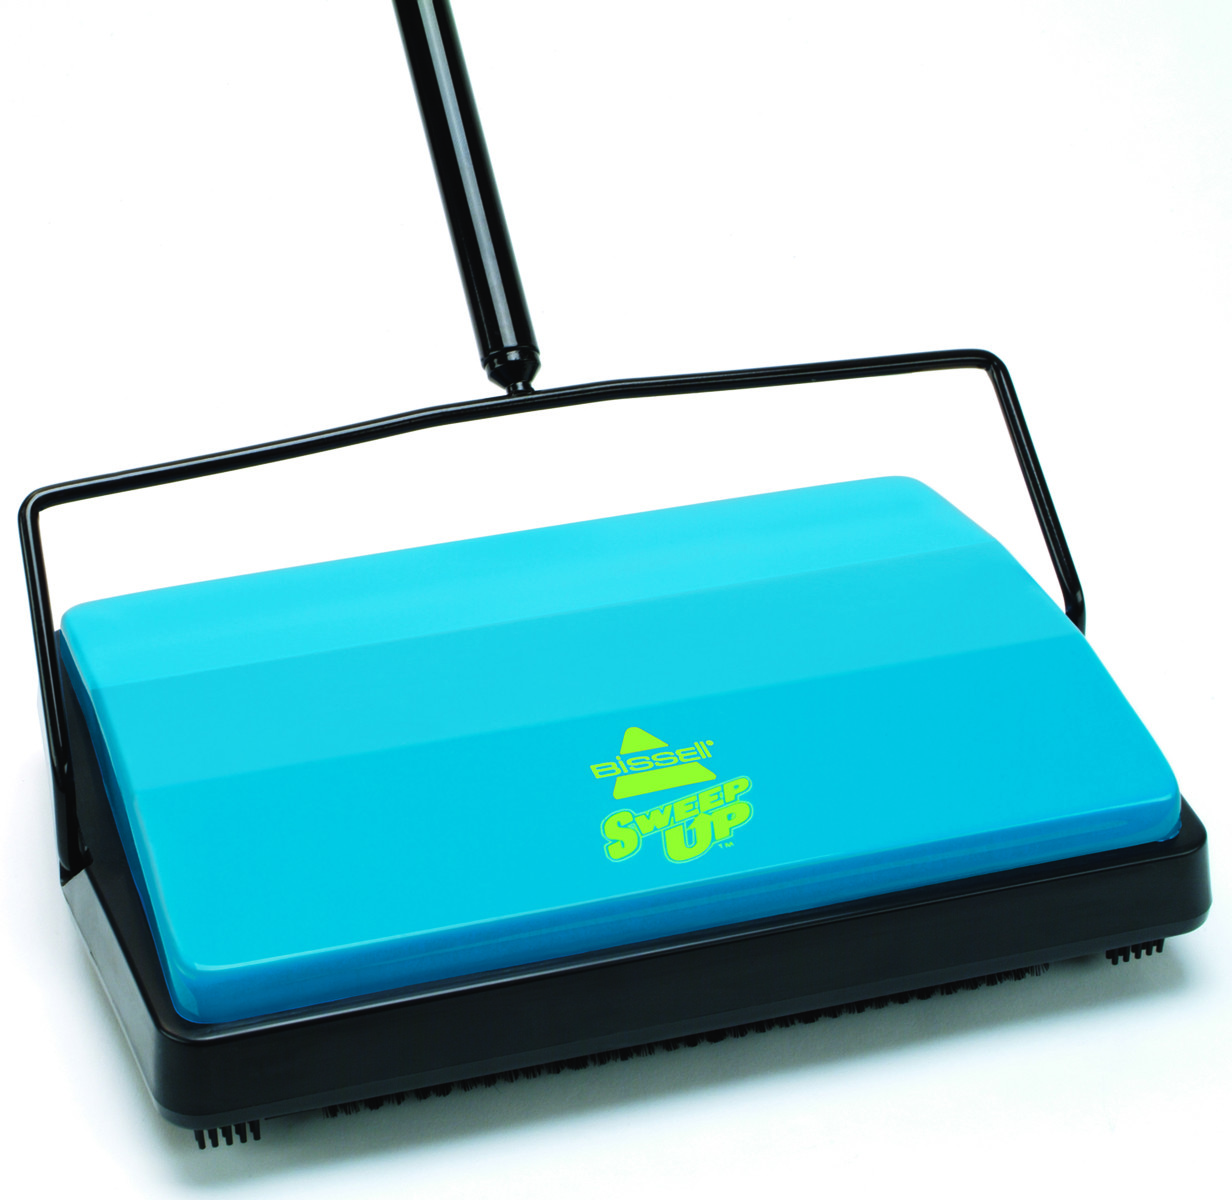 Bissell 21012 Carpet Sweeper 2101. Tap to expand